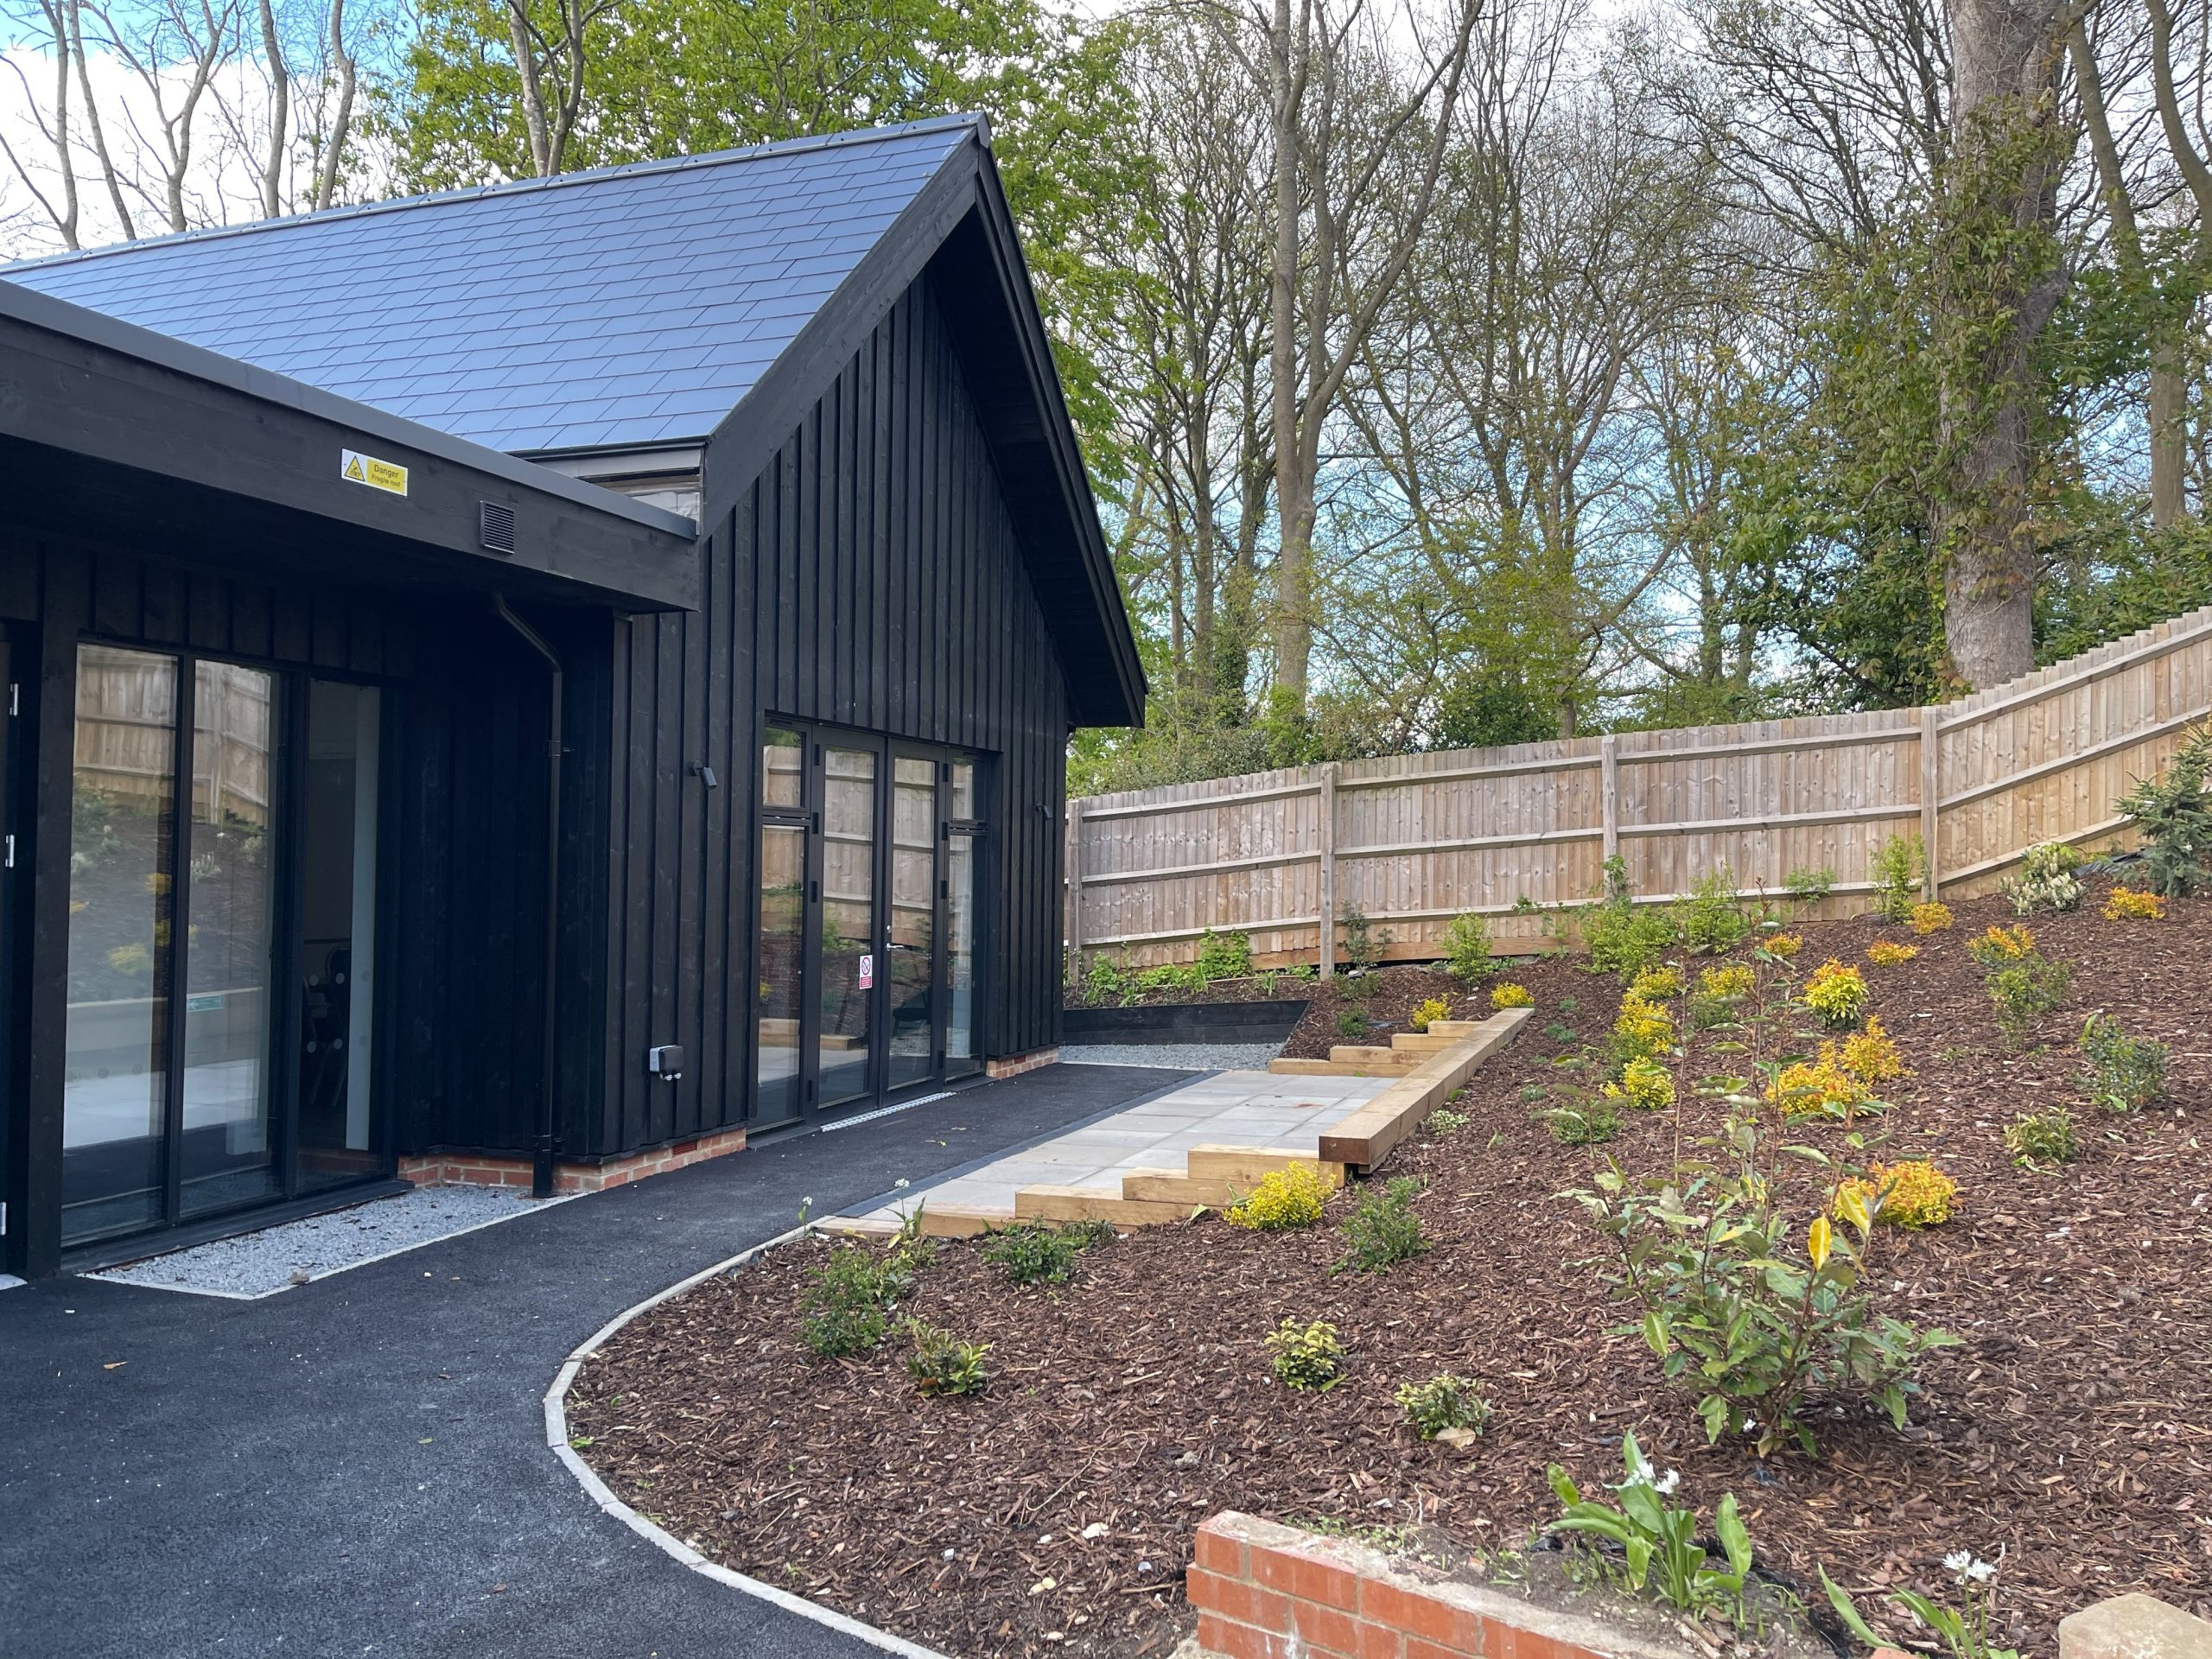 Bow-Brickhill-Community-Hall-Front-Entrance-To-The-Building